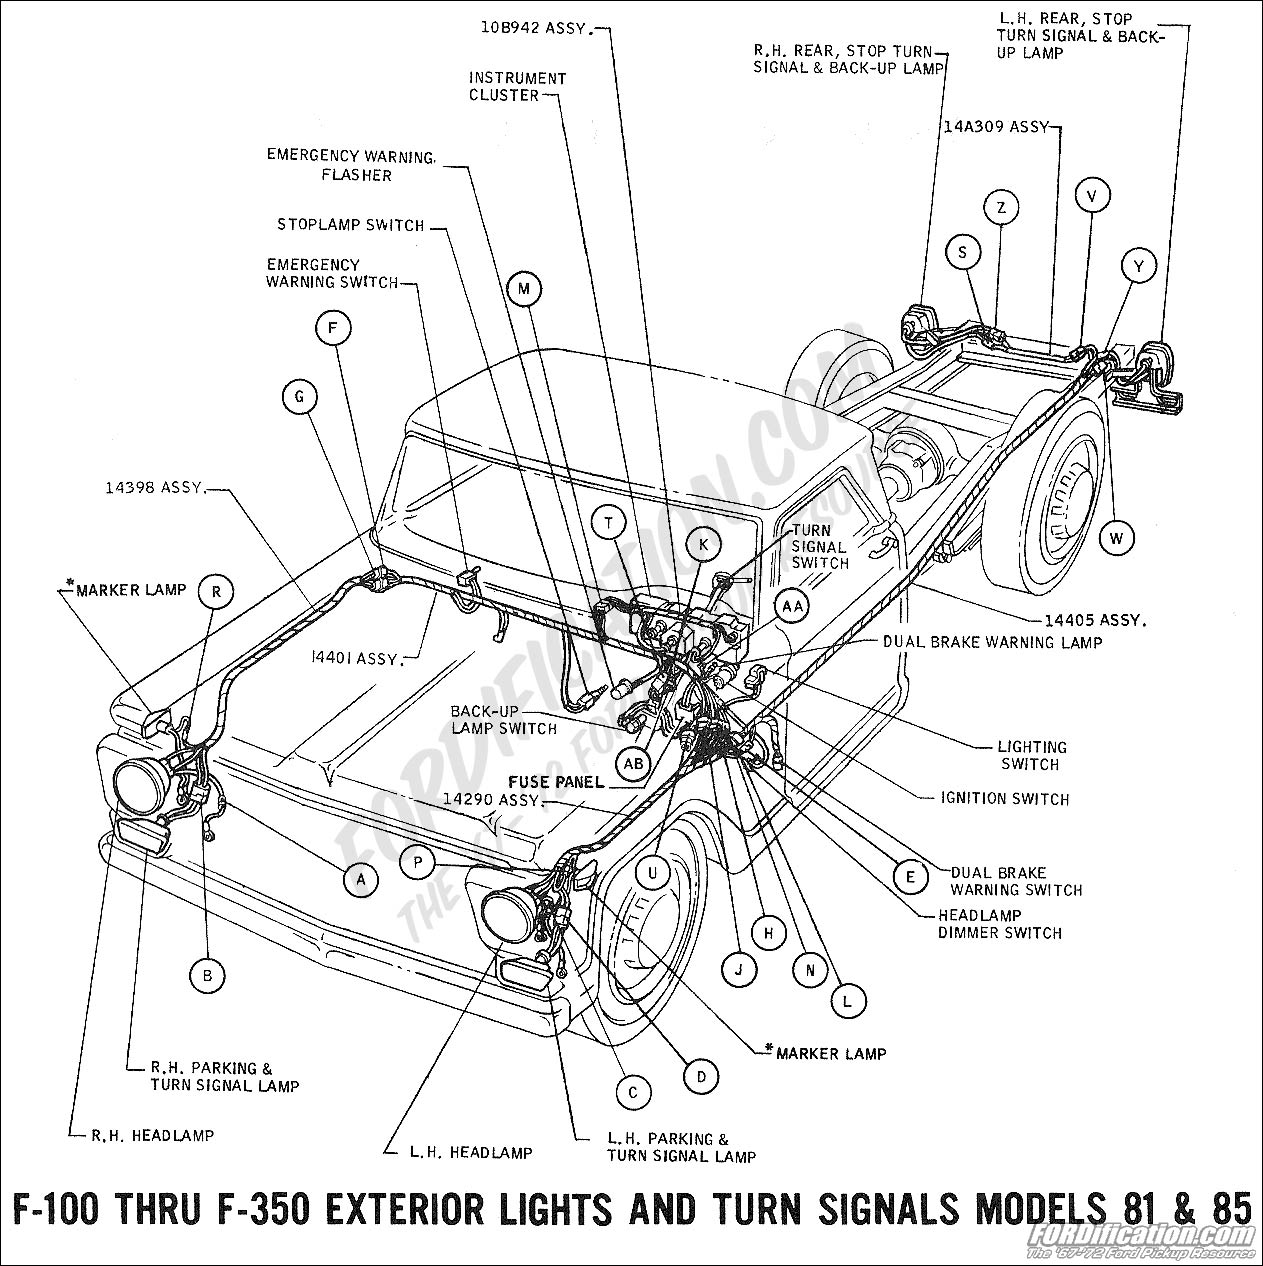 1969 Ford F100 Turn Signal Wiring Diagram Sketch Coloring Page